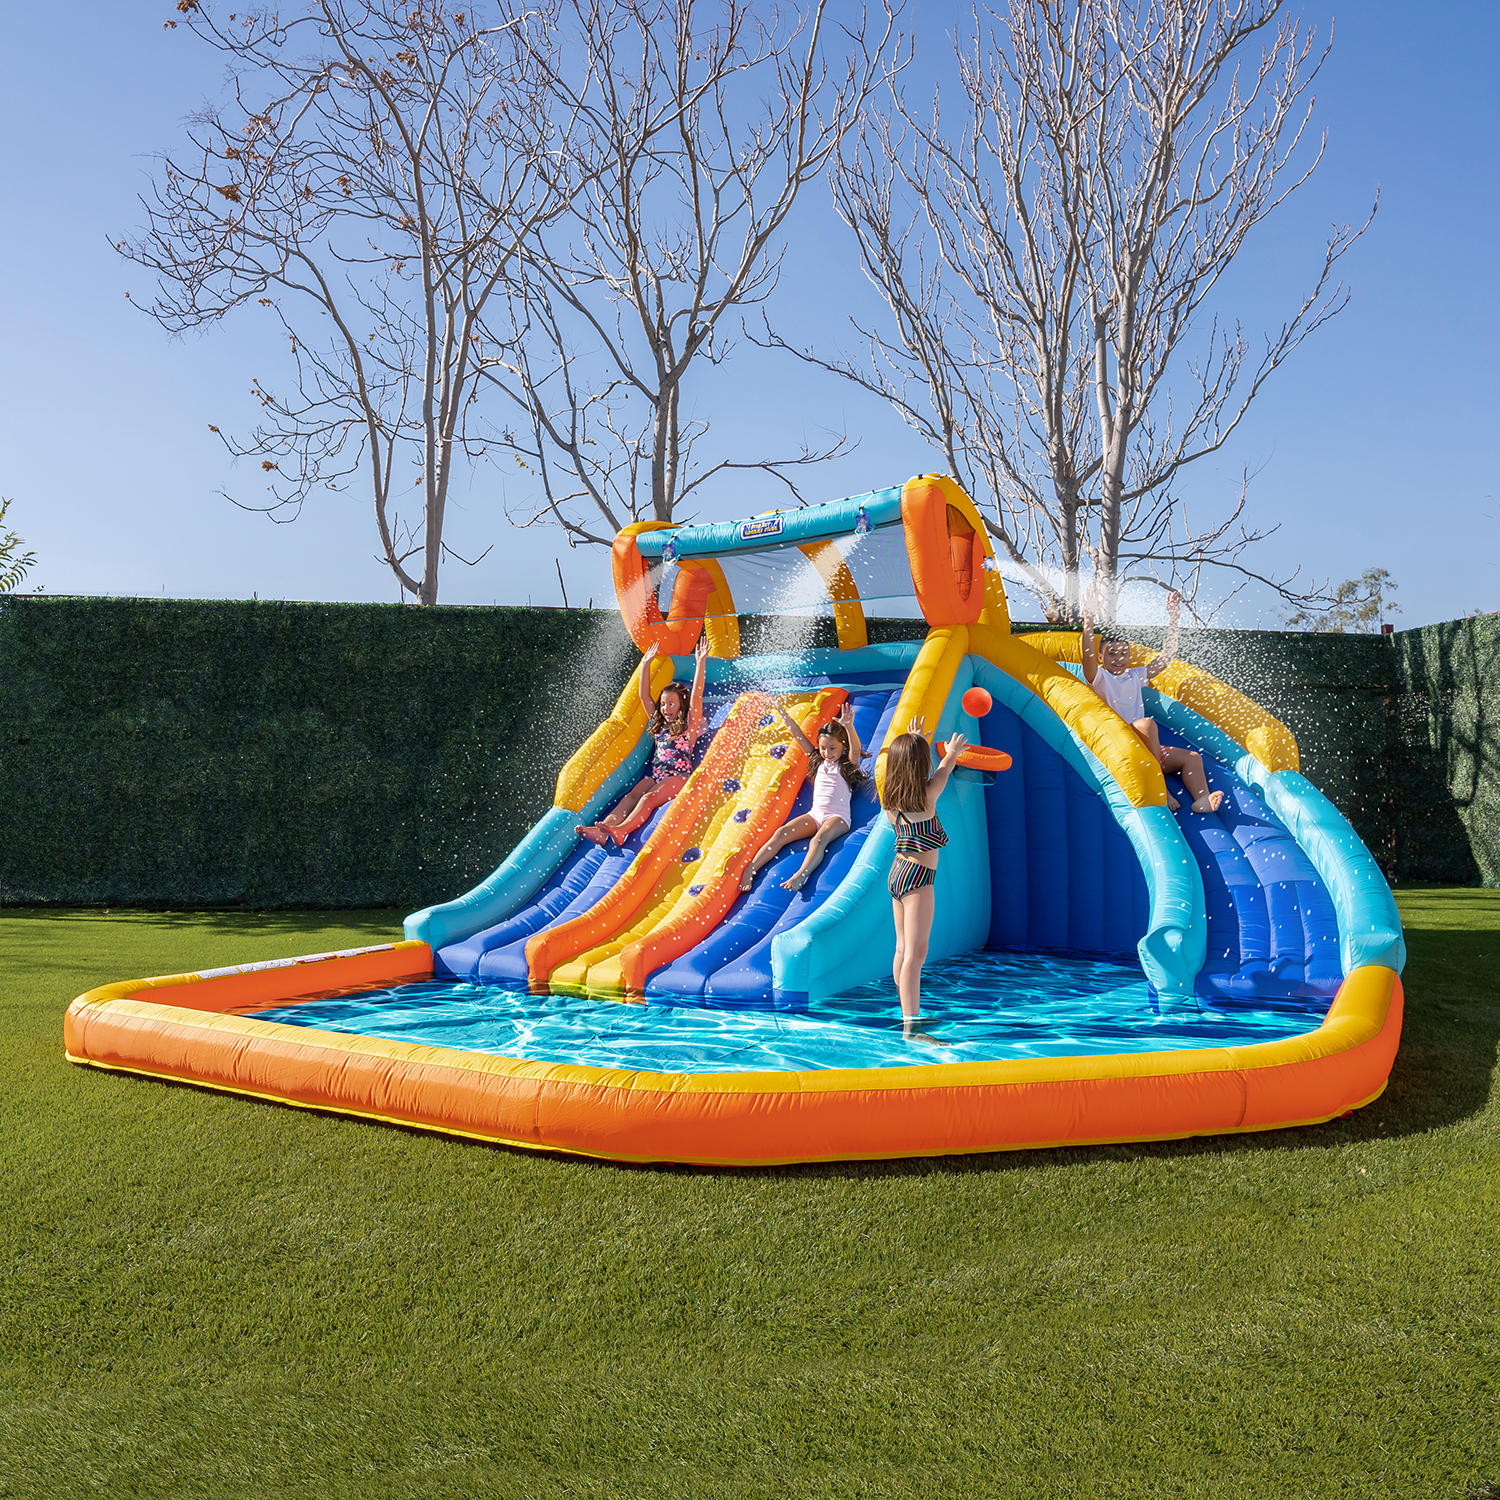 My 1st Triple Water Slide with Splash Pool and Water Sprayers